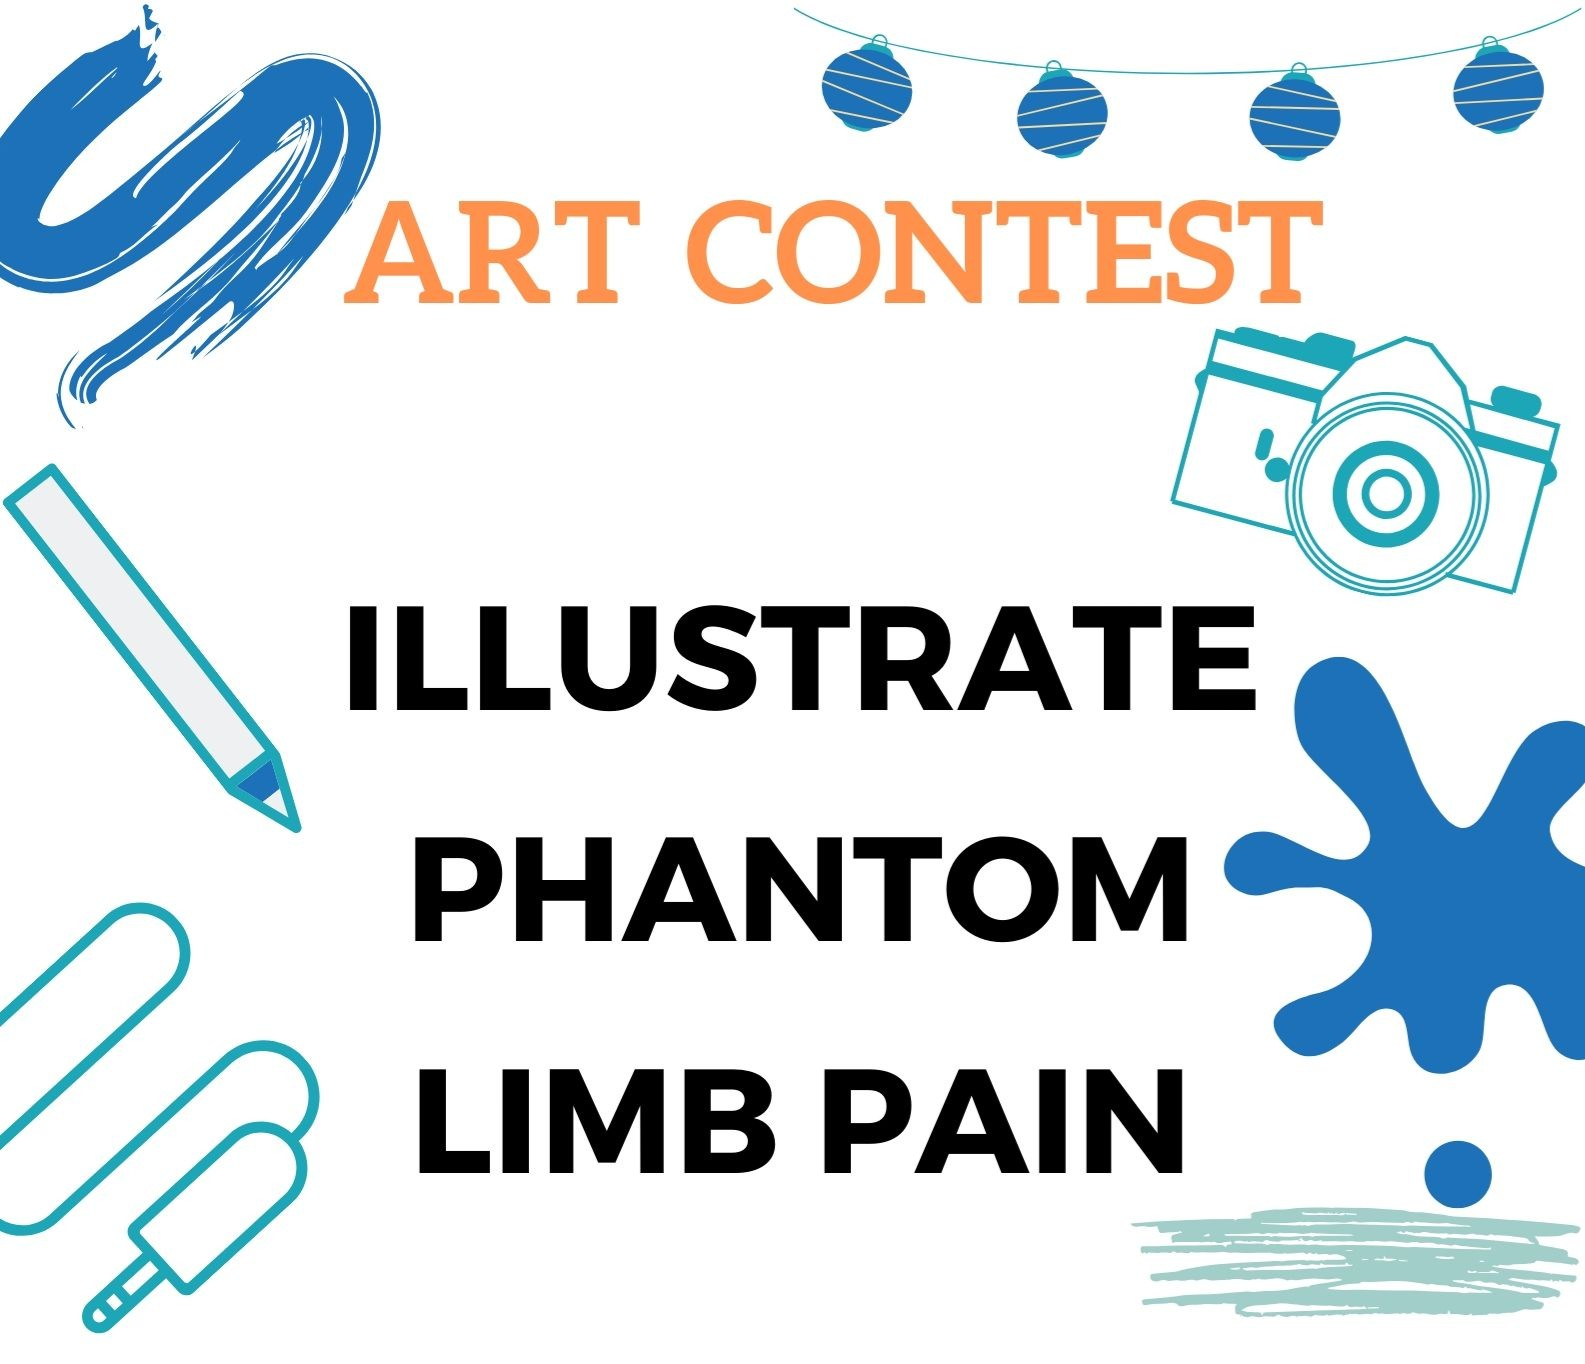 Illustrate Phantom Limb Pain:ICPLP2021 Art Contest